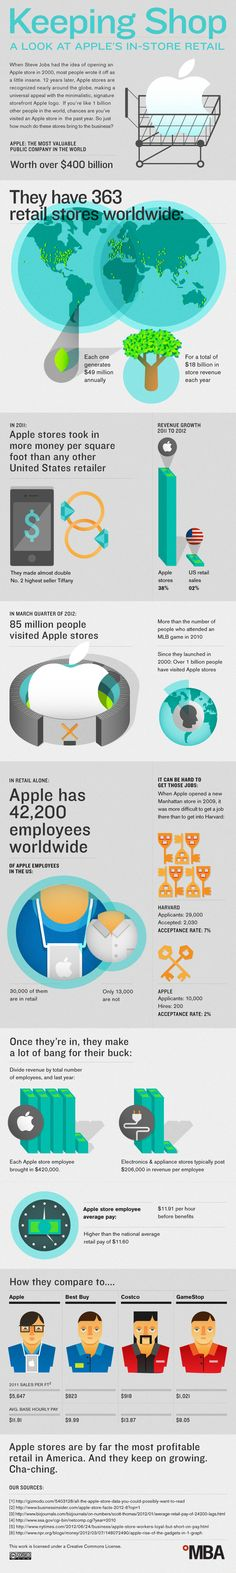 Apple Stores: The Most Profitable Retail In America #INFOGRAPHIC